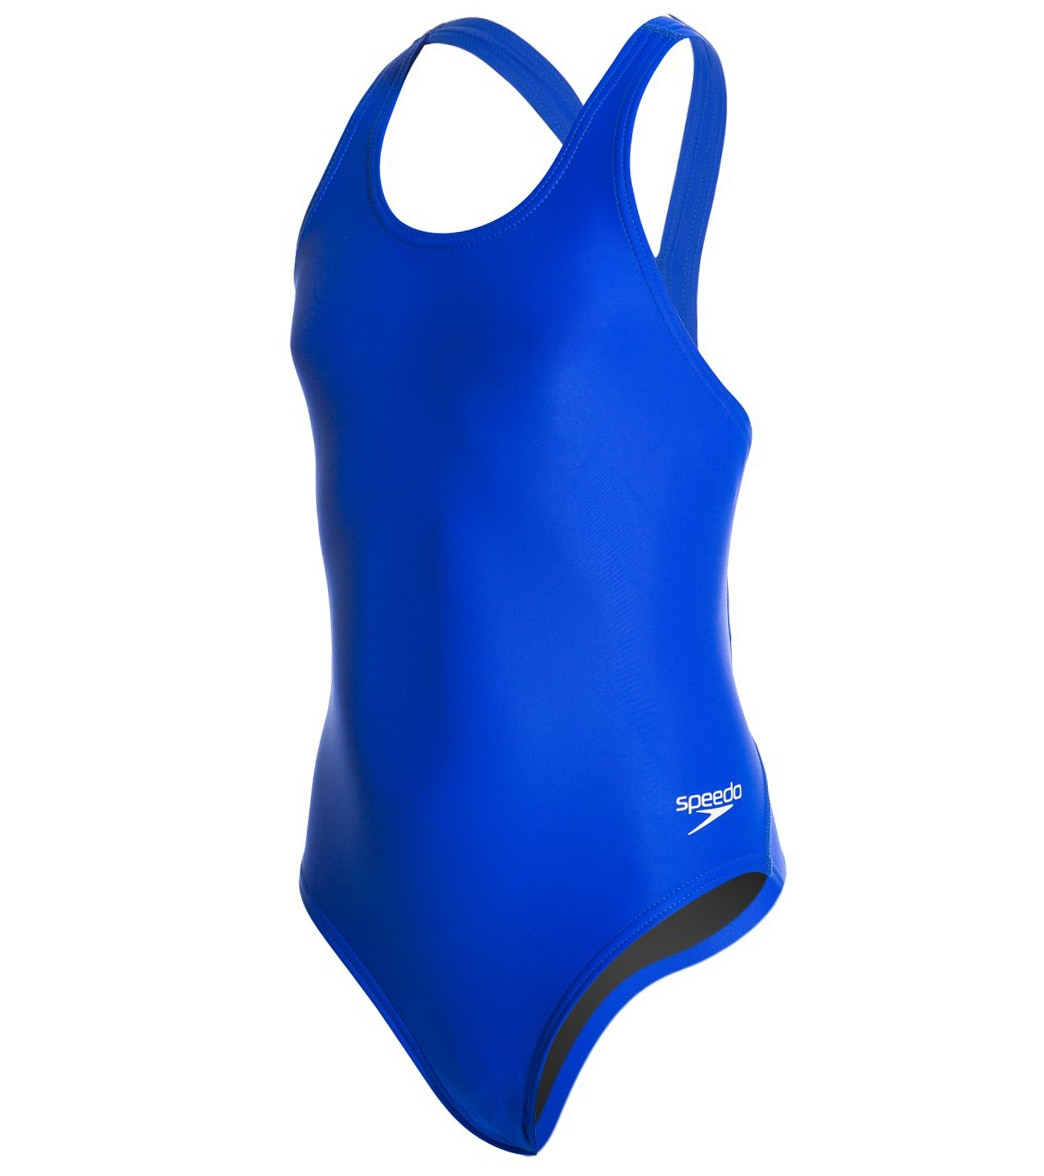 eeea36c964 Speedo PowerFLEX Eco Solid Super Pro Youth Swimsuit at SwimOutlet.com -  Free Shipping